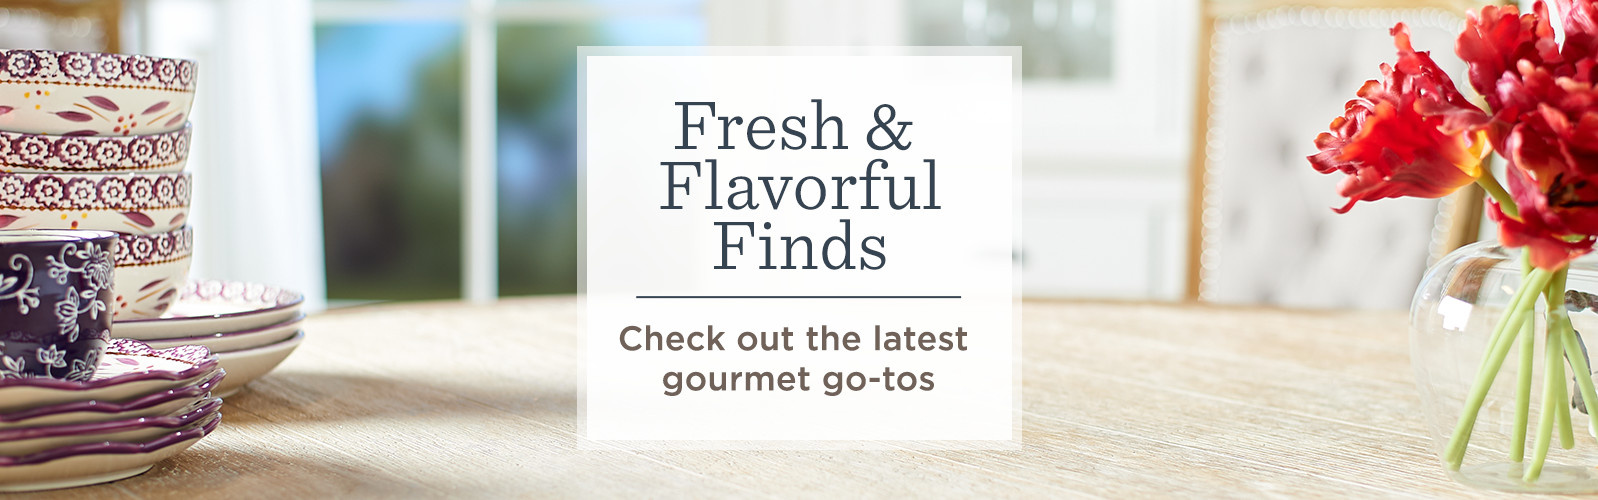 Fresh & Flavorful Finds. Check out the latest gourmet go-tos